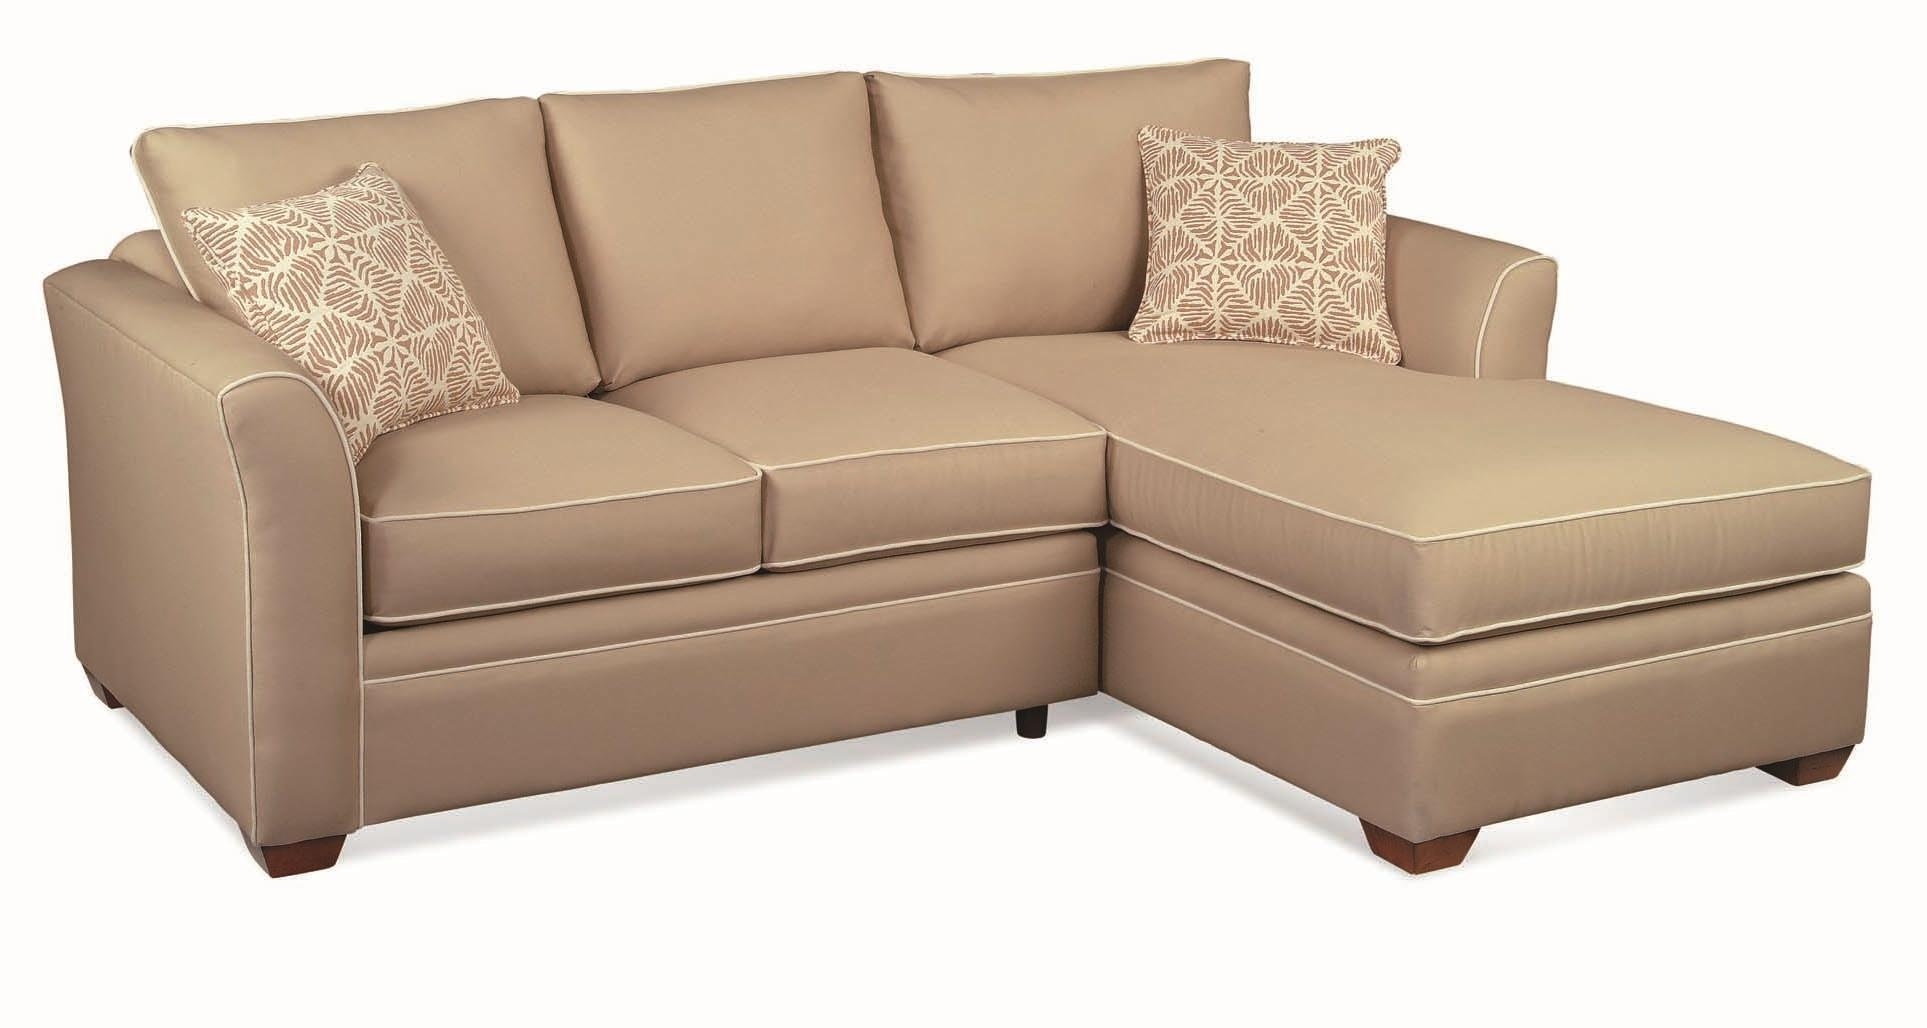 Braxton Culler Bridgeport Casual 2 Piece Sectional Sofa With With Regard To Braxton Culler Sofas (Photo 19 of 20)